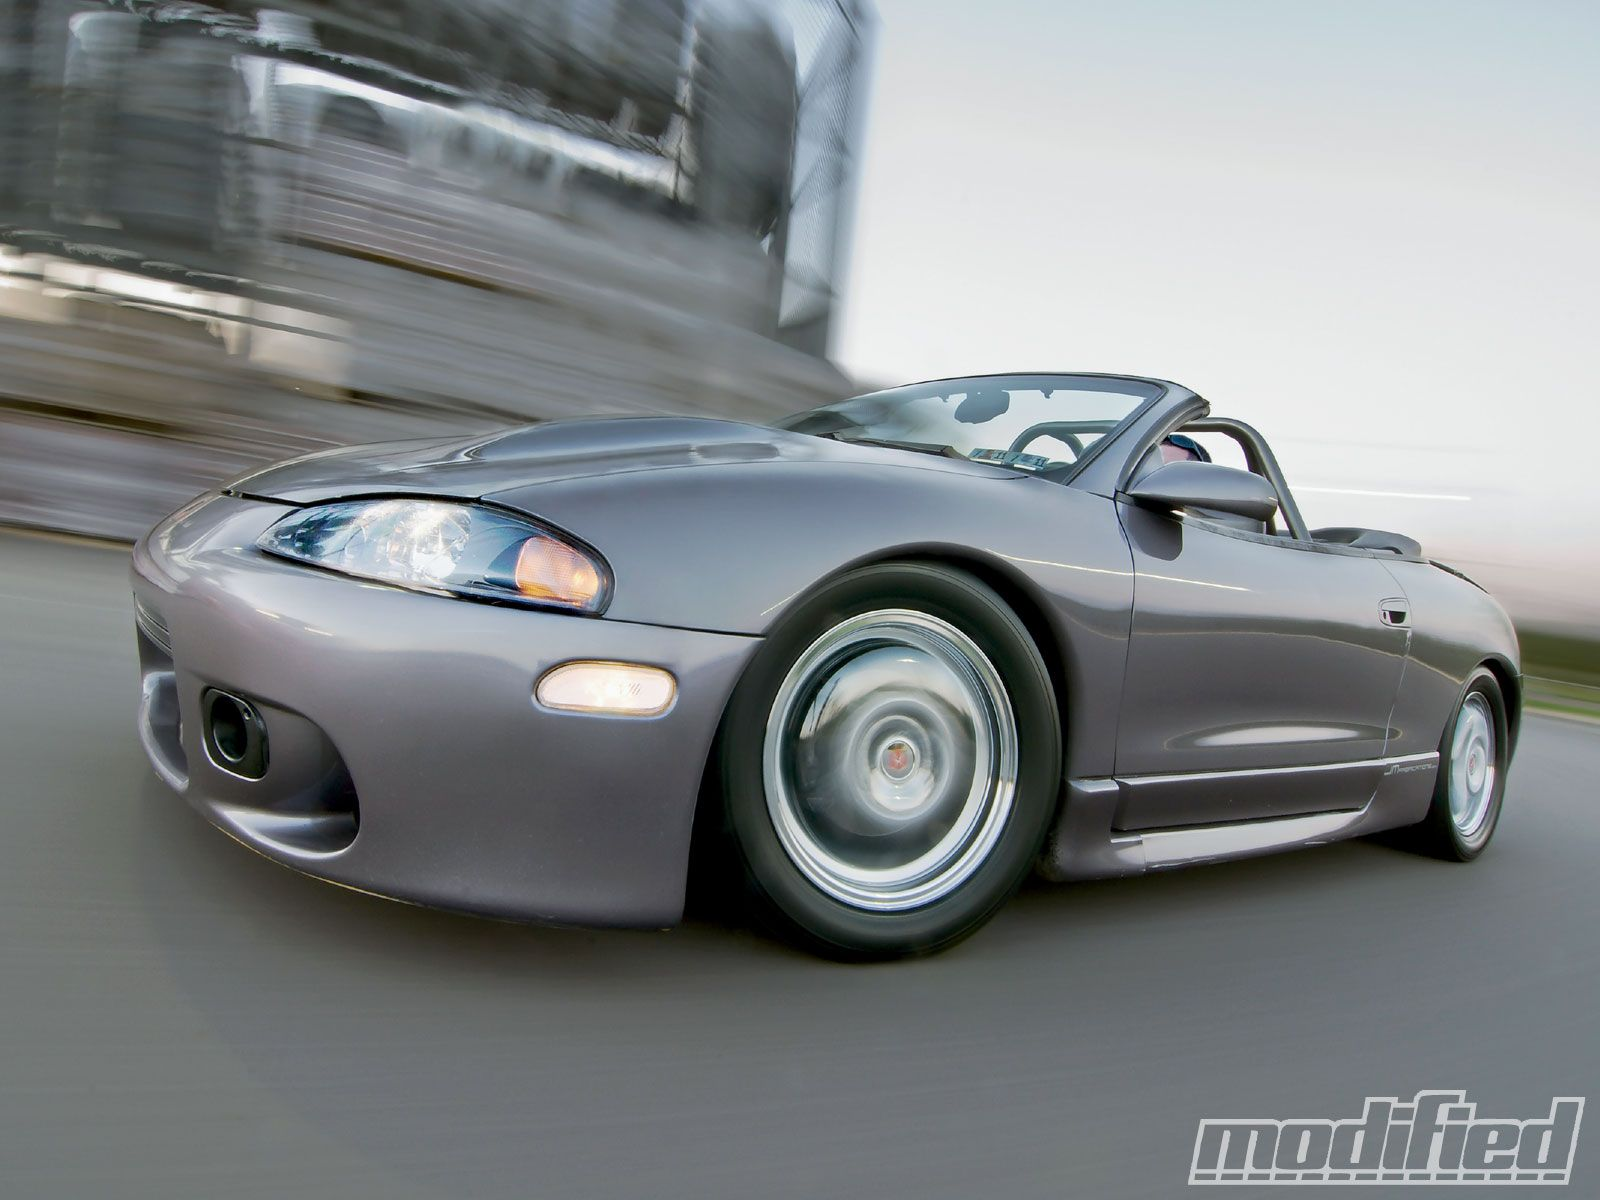 1999 mitsubishi eclipse ii spider pictures information and specs auto. Black Bedroom Furniture Sets. Home Design Ideas